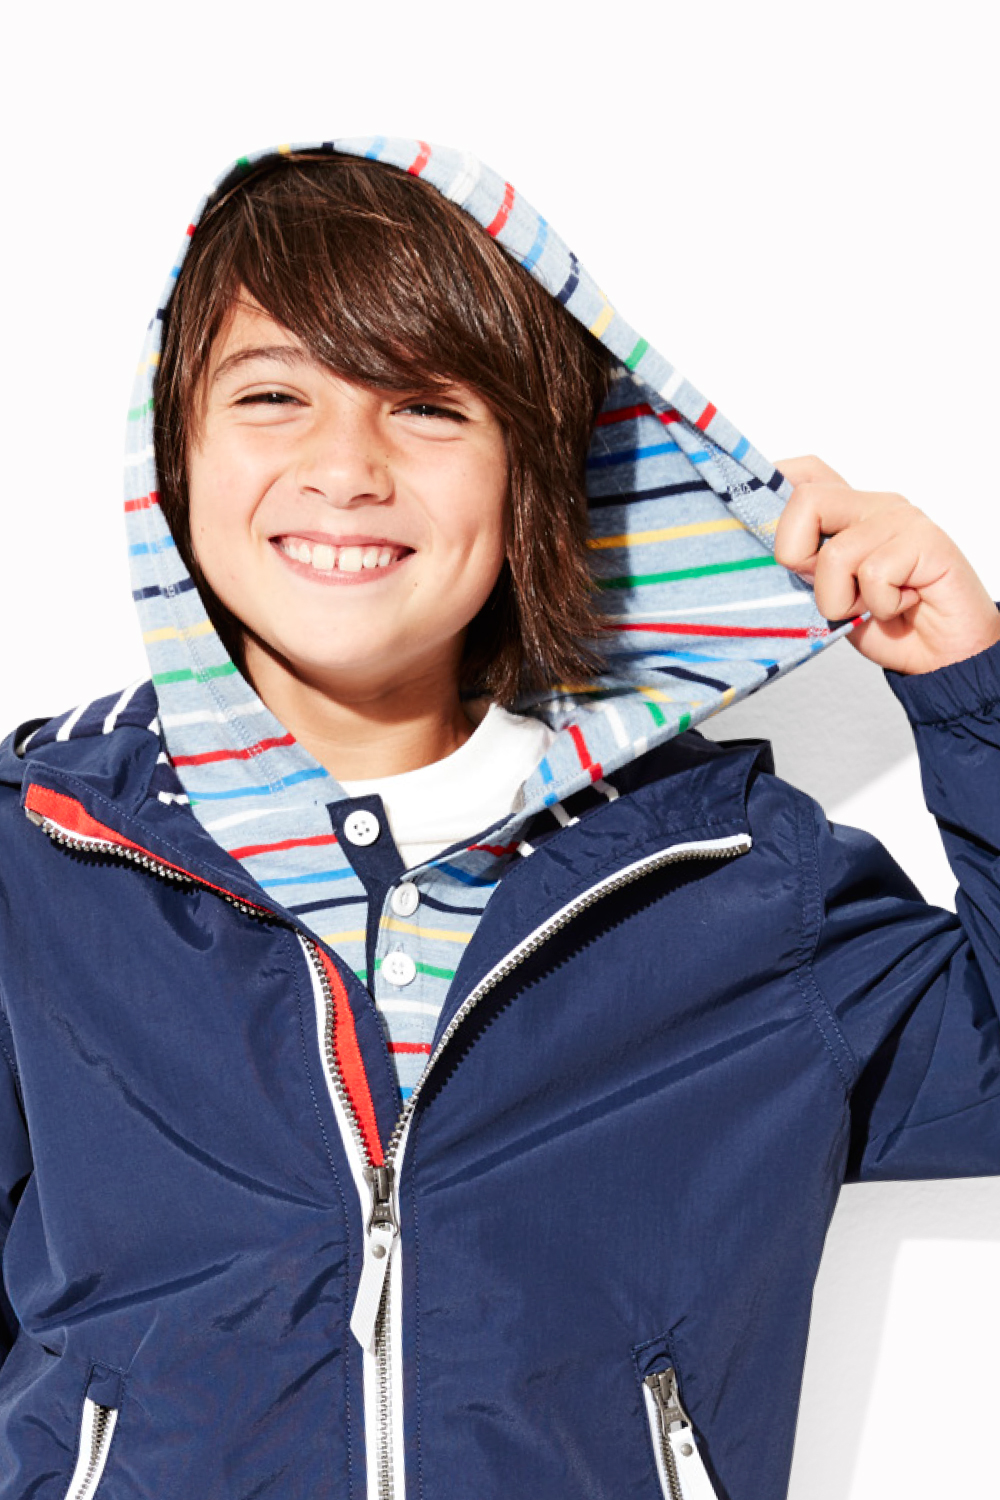 Hanna Andersson boys playclothes